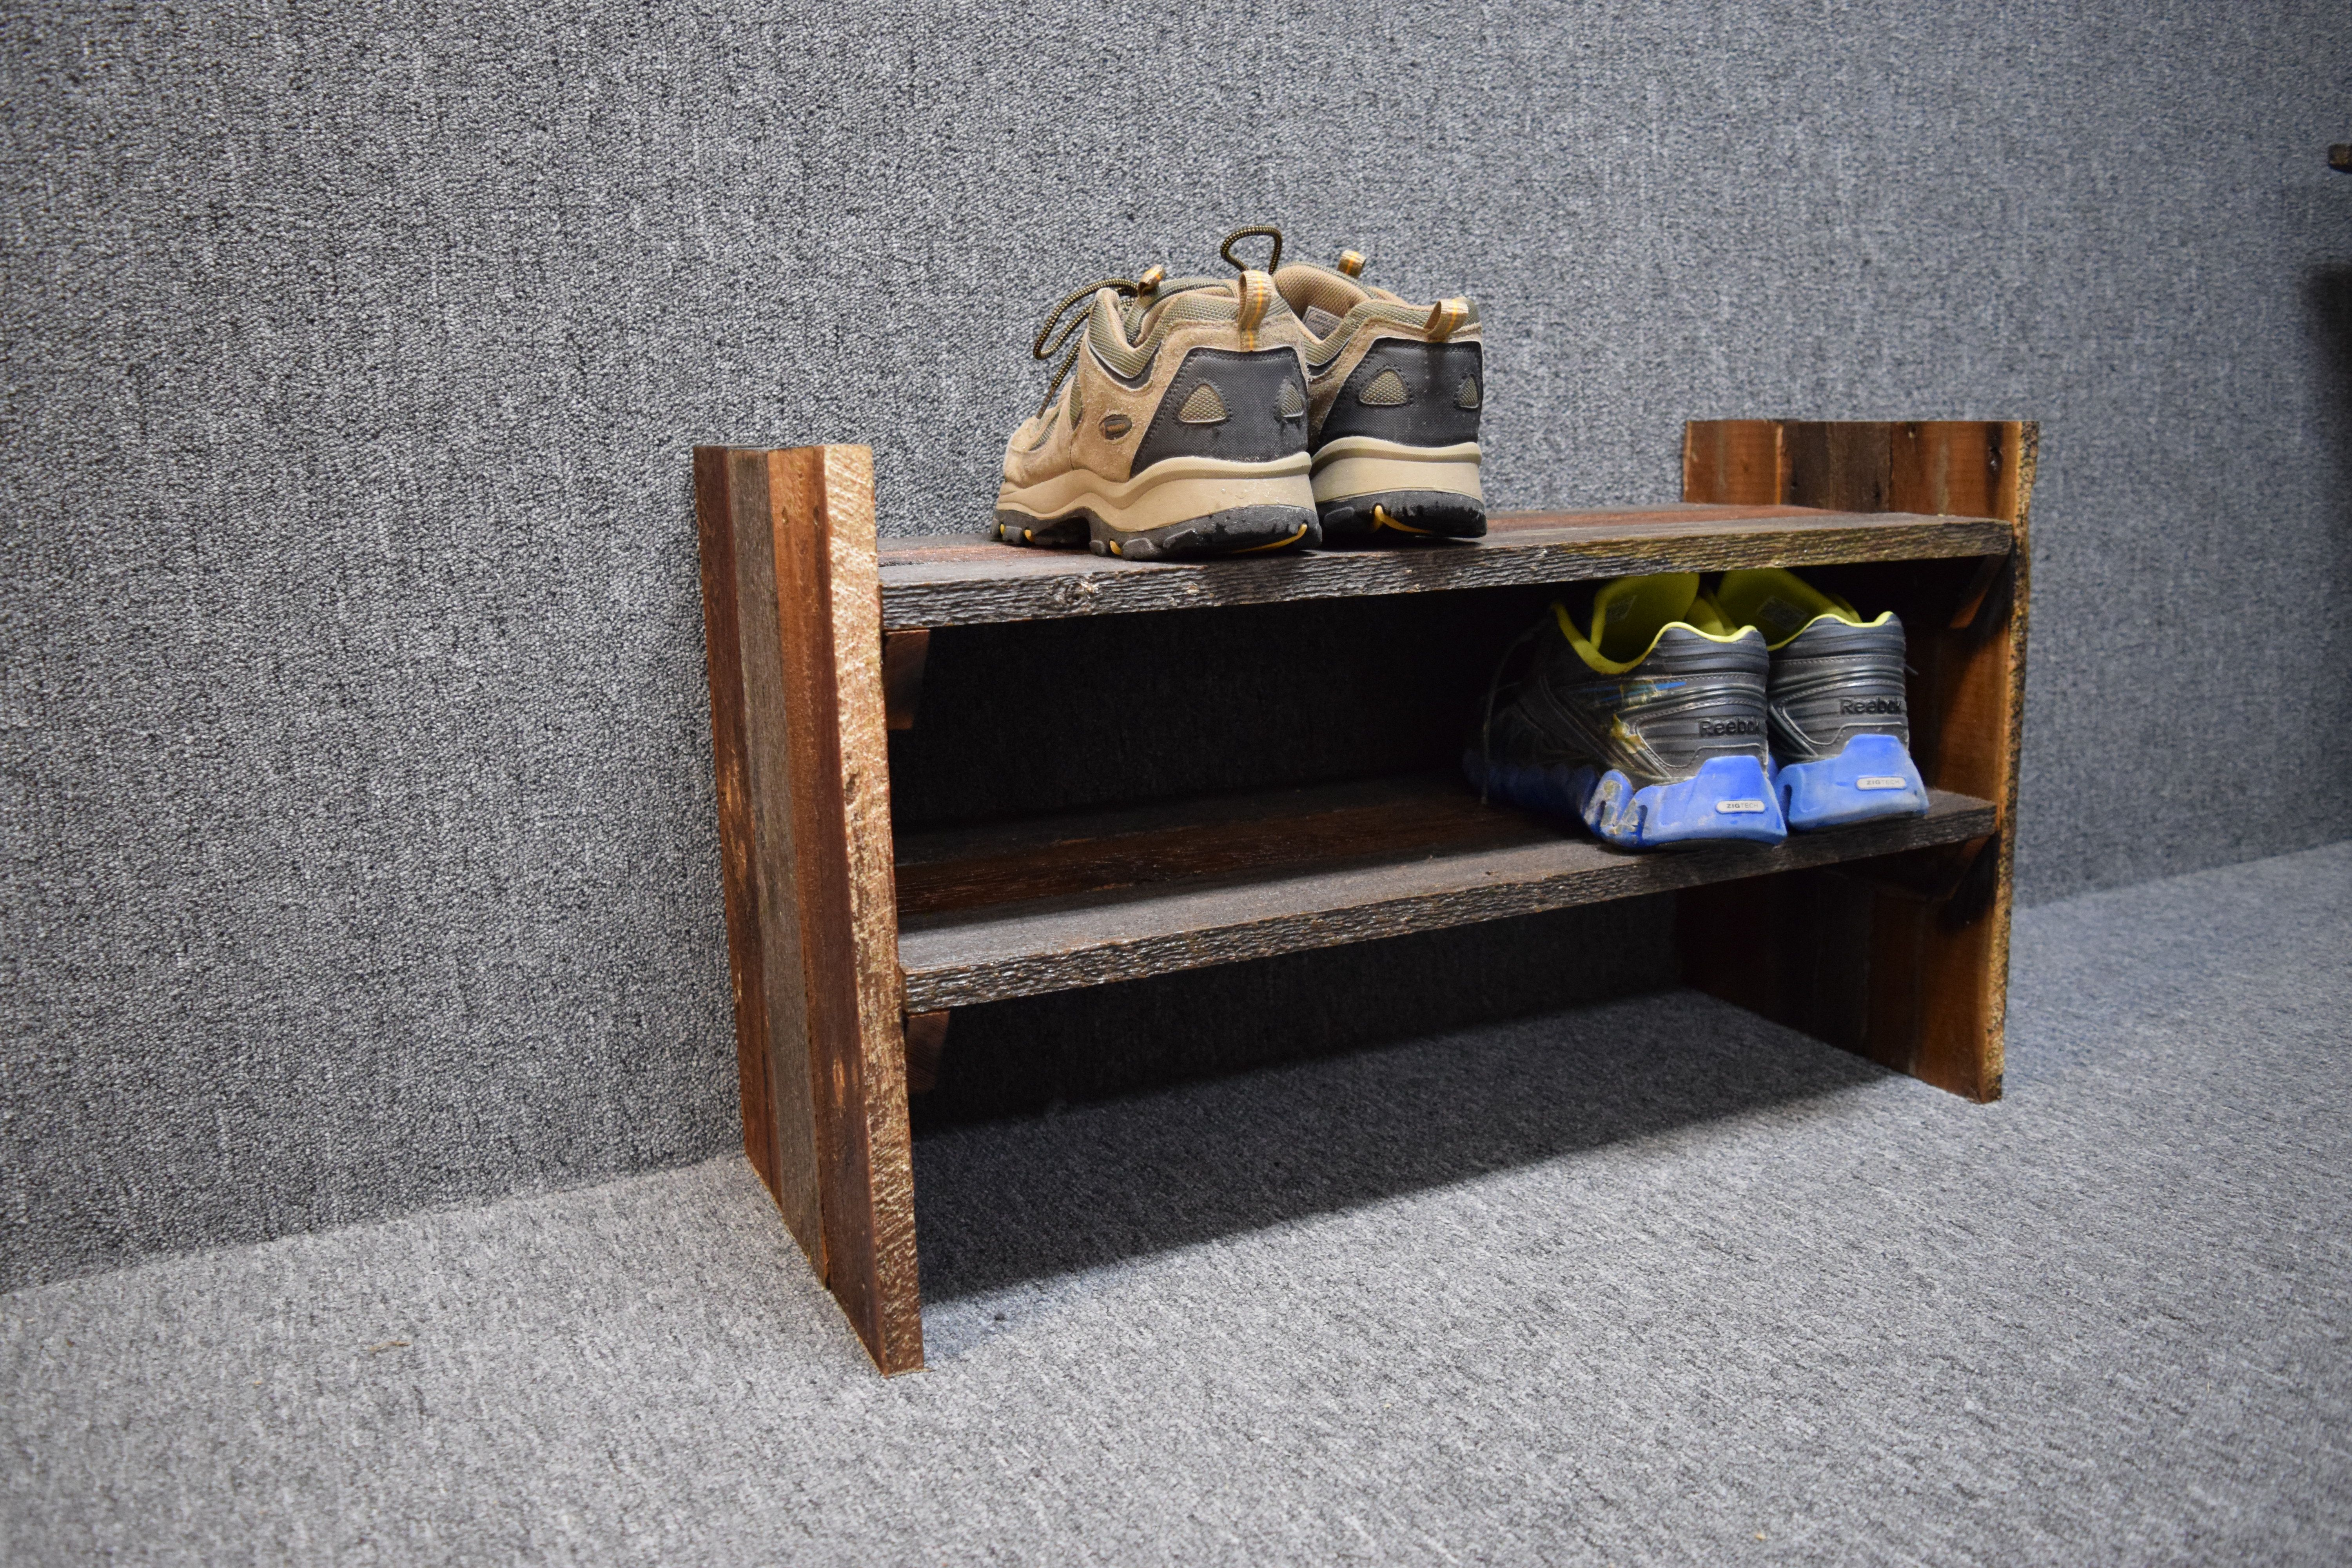 Buy A Handmade Barn Wood Shoe Rack Made To Order From